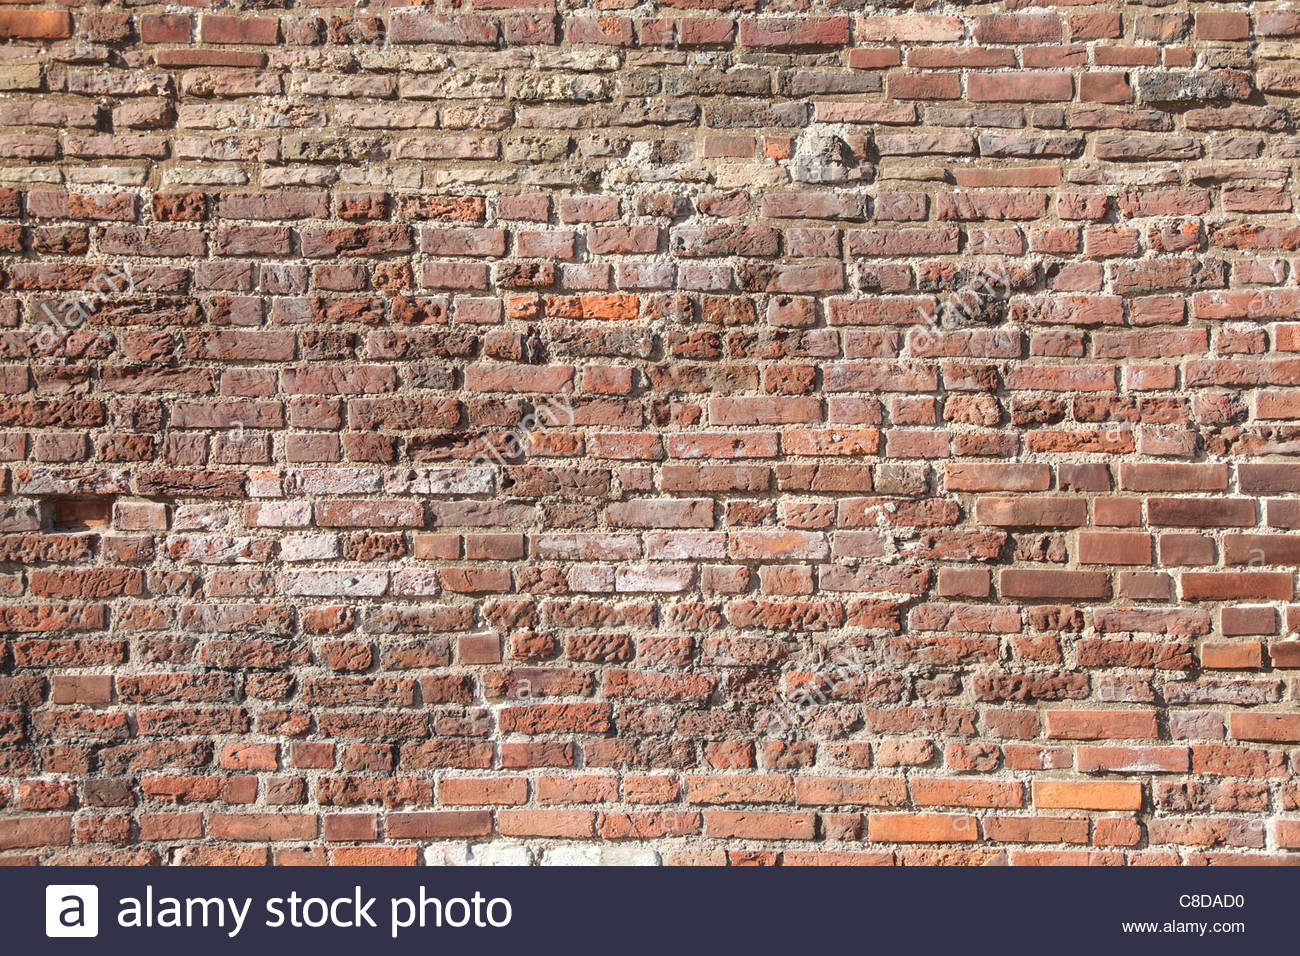 Abstract background with old brick wall. - Stock Image